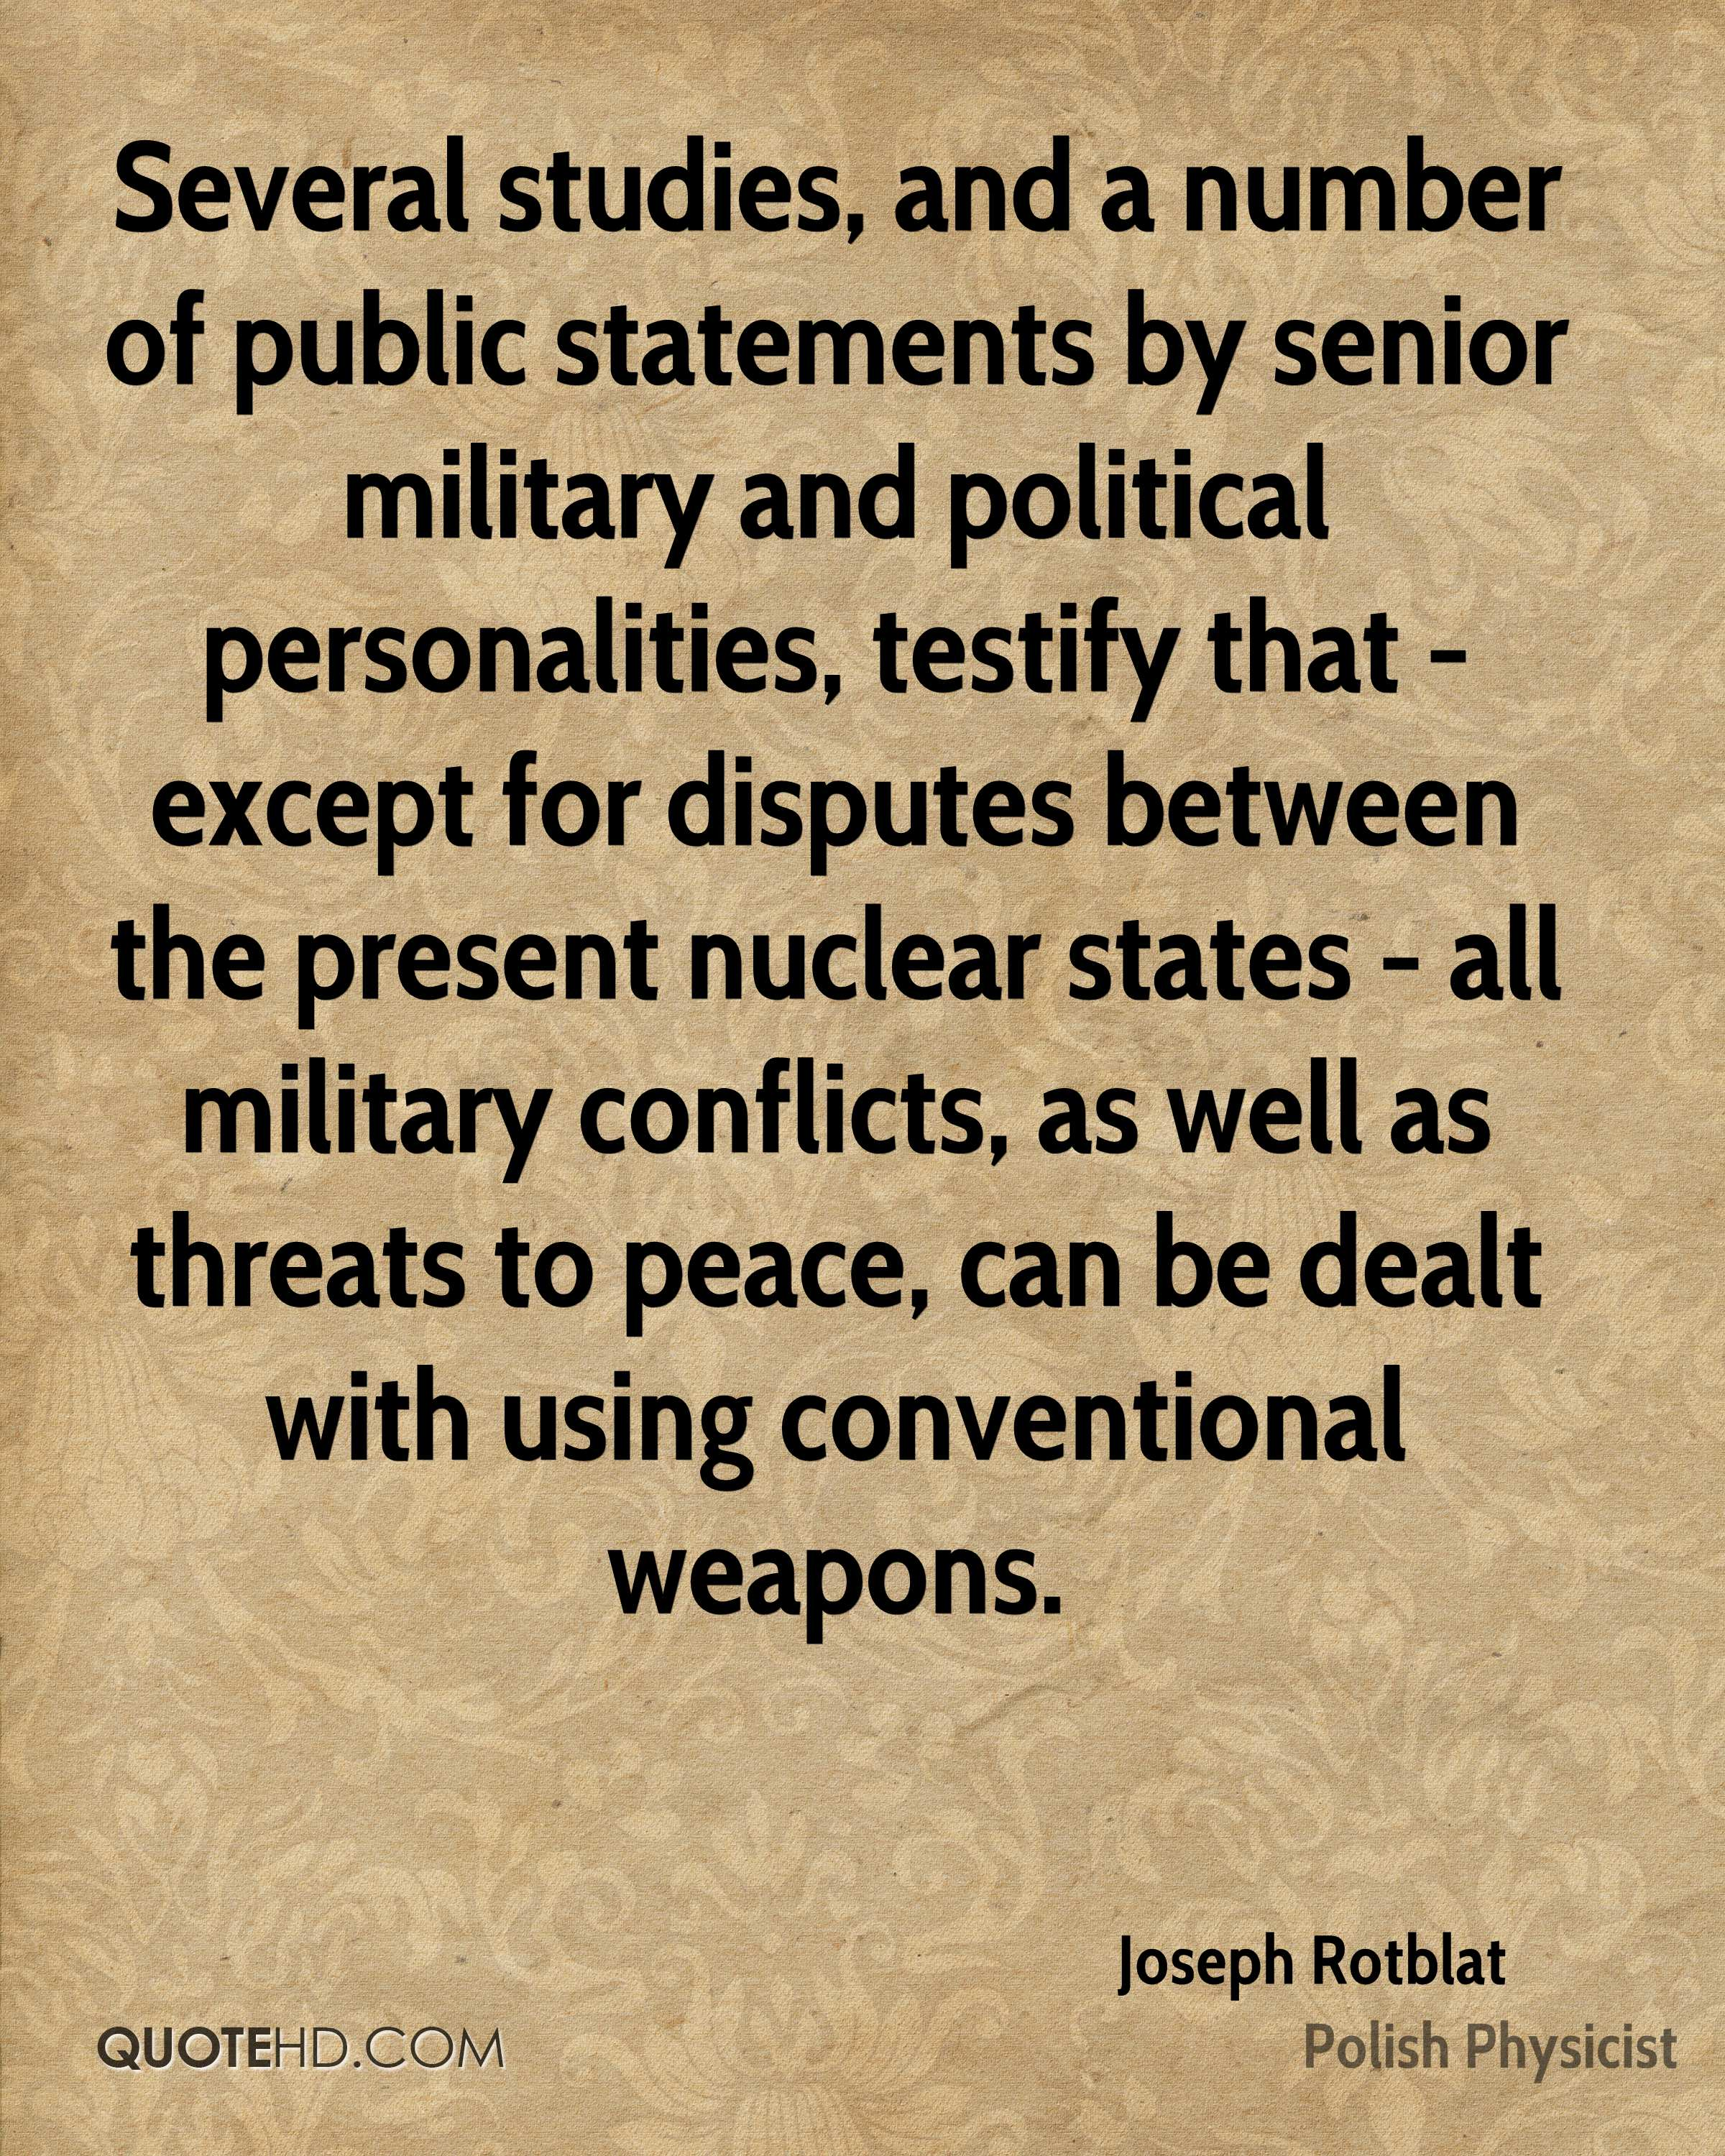 Several studies, and a number of public statements by senior military and political personalities, testify that - except for disputes between the present nuclear states - all military conflicts, as well as threats to peace, can be dealt with using conventional weapons.